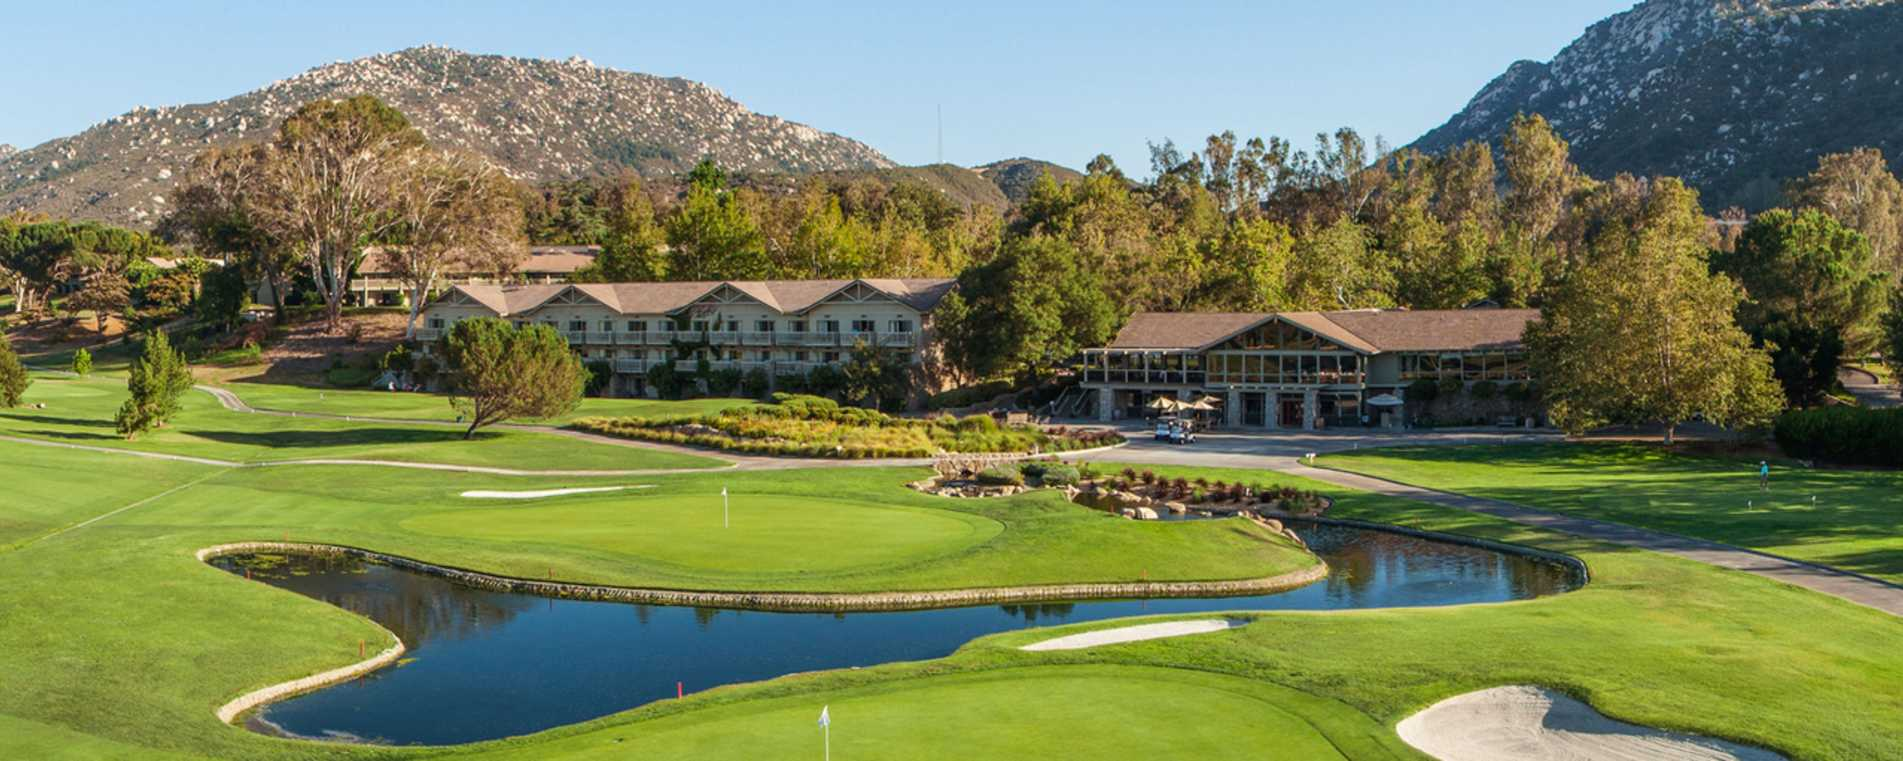 Golf - Temecula Creek Inn